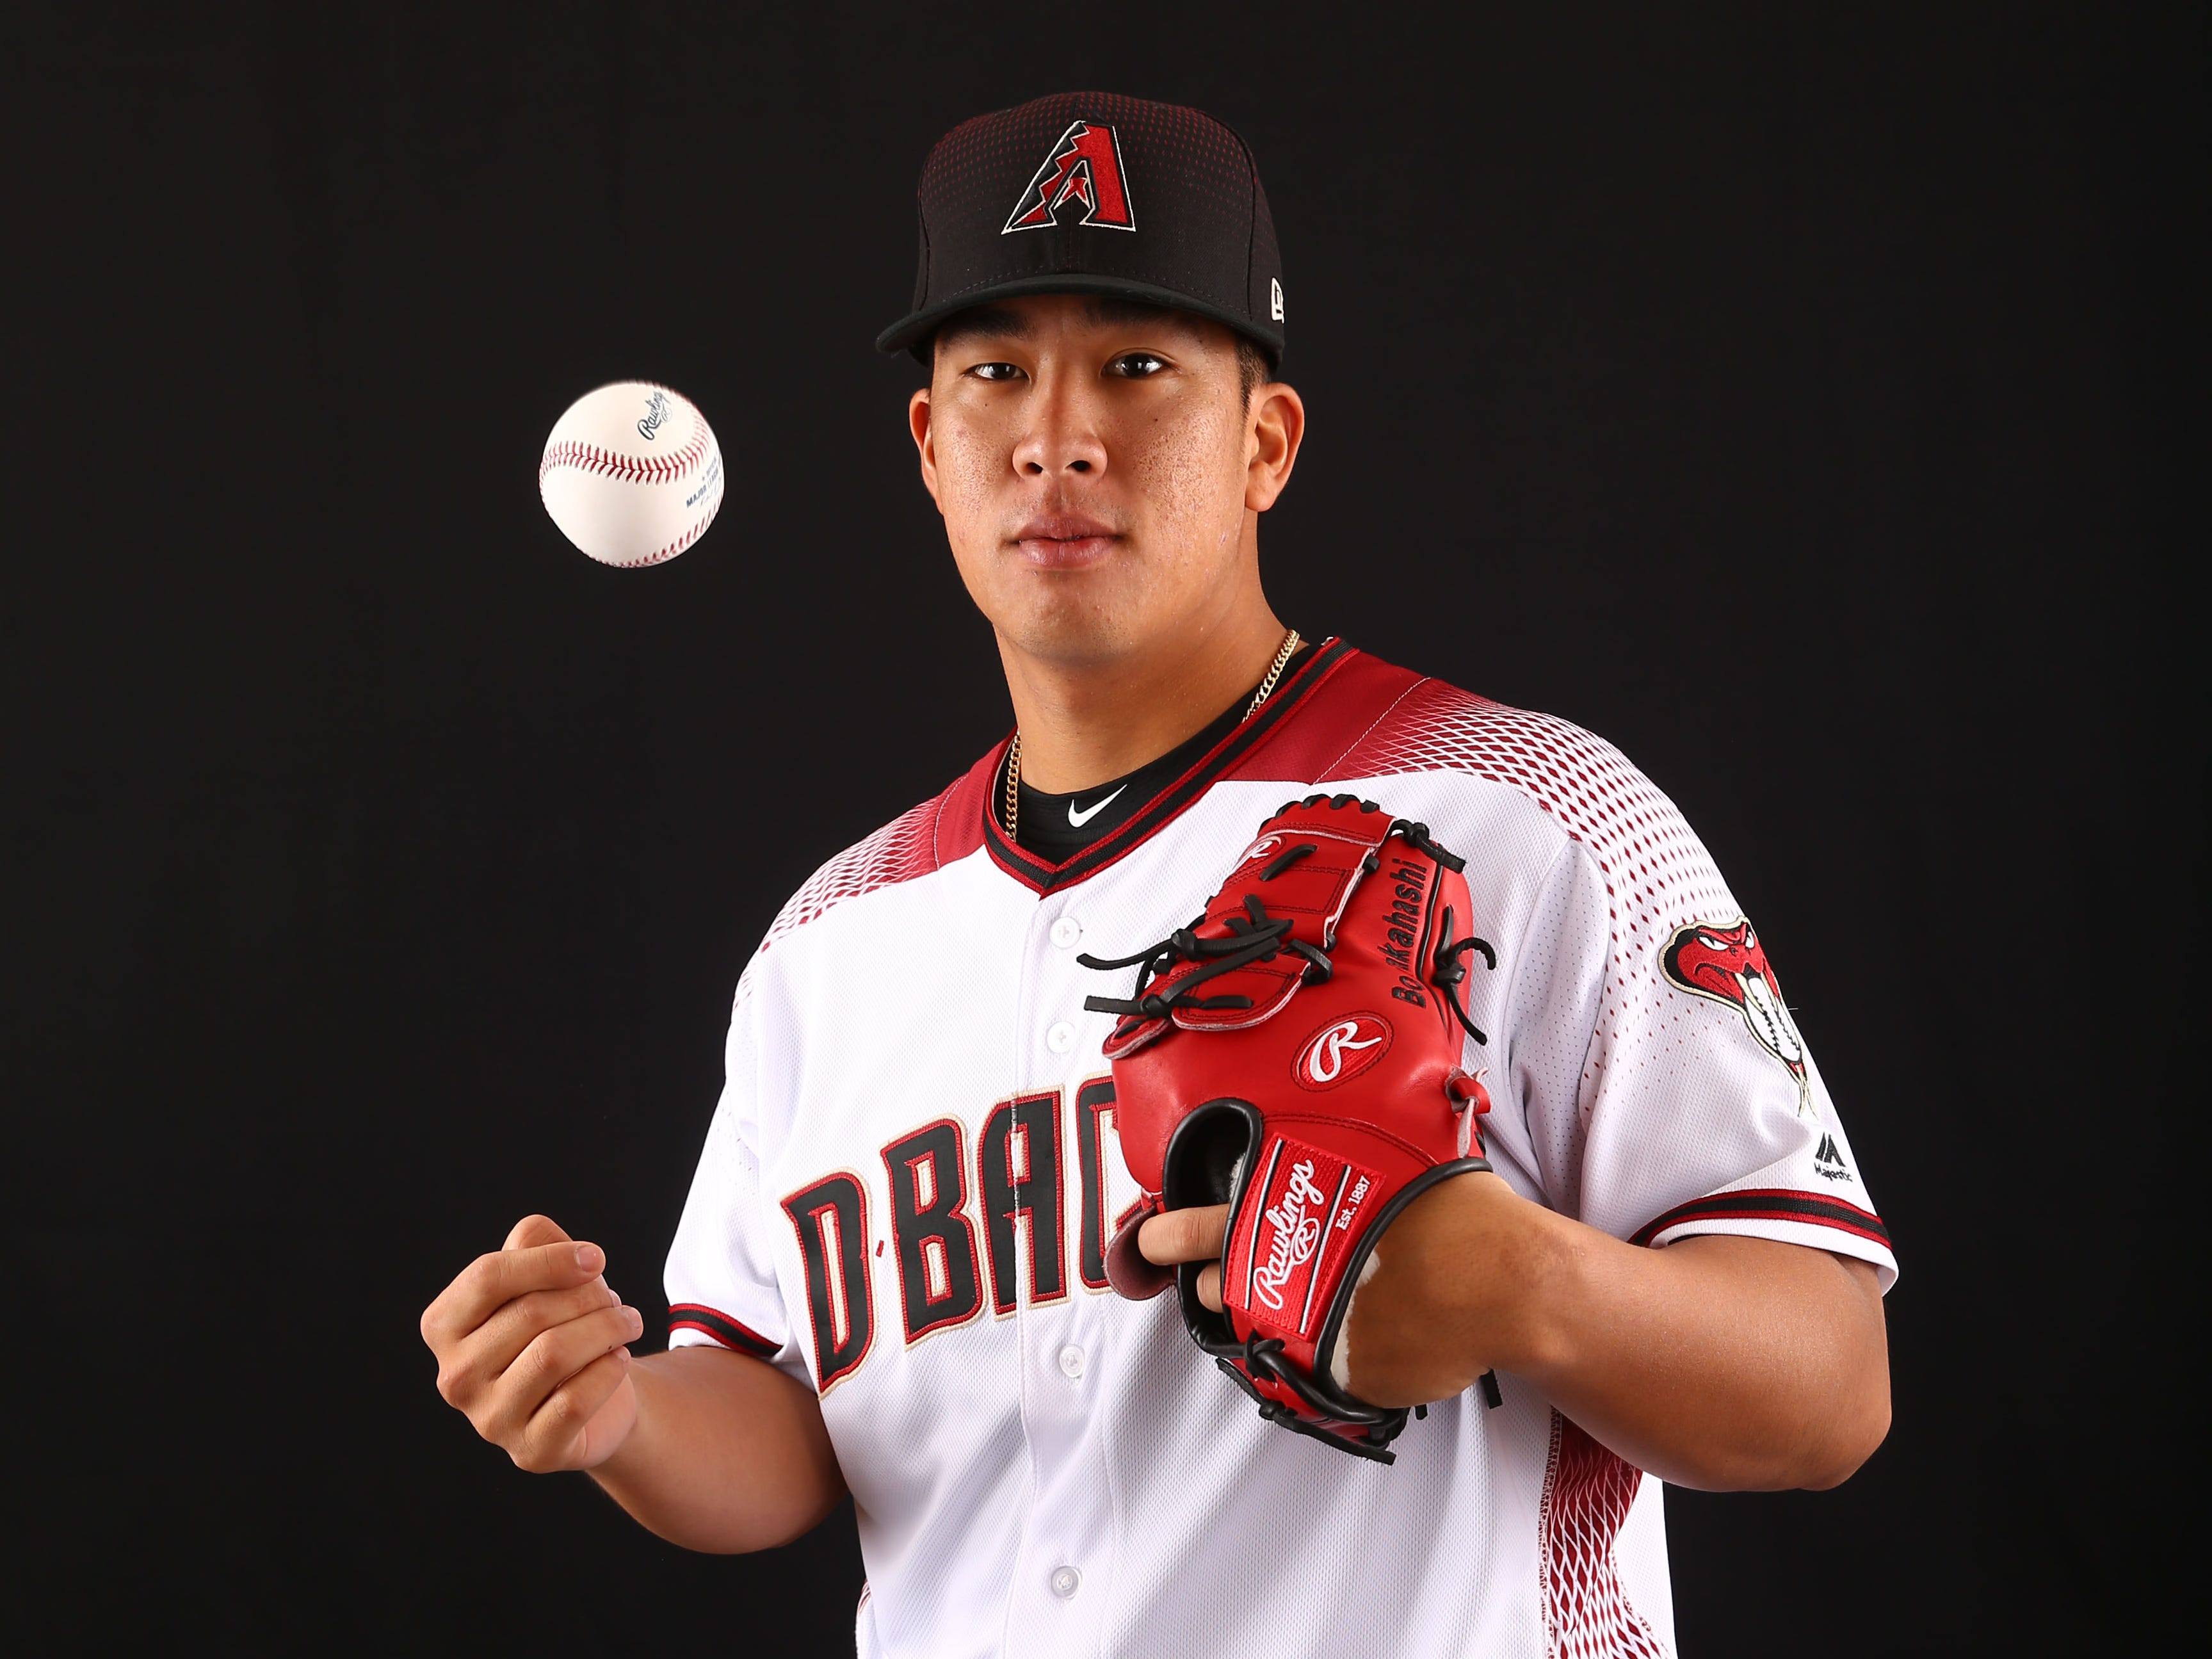 Bo Takahashi of the Arizona Diamondbacks poses for a photo during the annual Spring Training Photo Day on Feb. 20 at Salt River Fields in Scottsdale, Ariz.